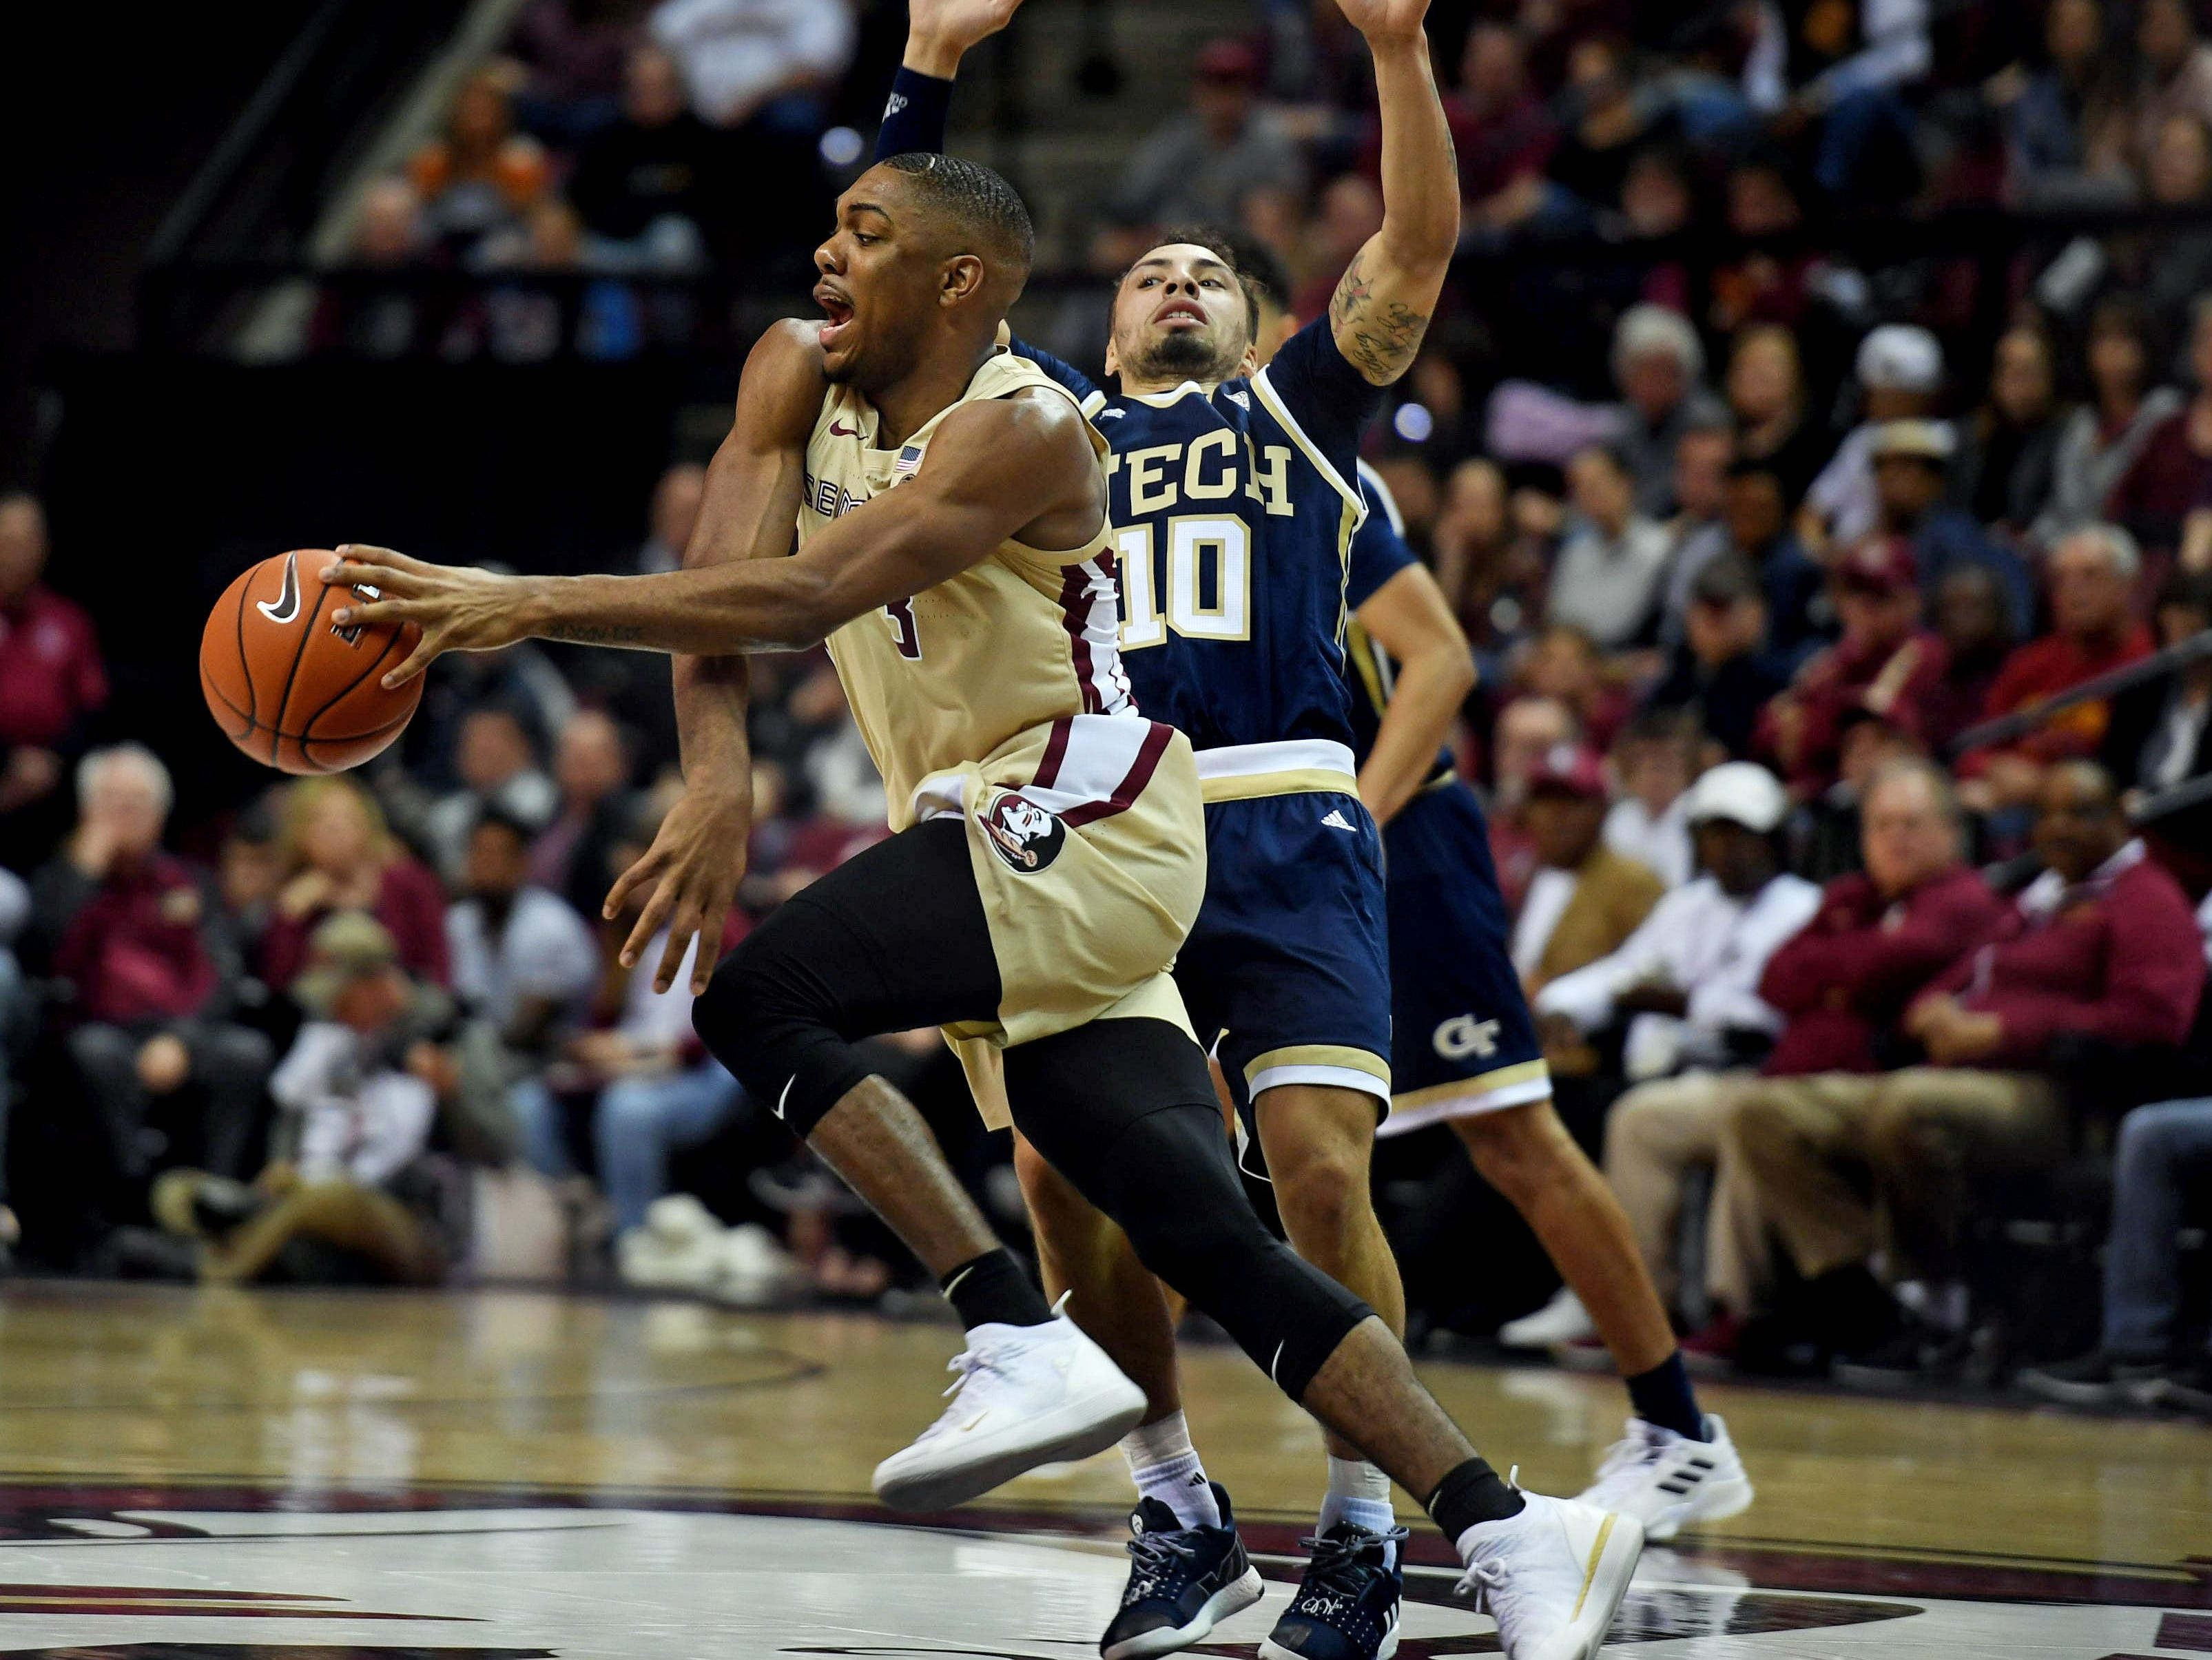 Feb 2, 2019; Tallahassee, FL, USA; Florida State Seminoles guard Trent Forrest (3) is fouled by Georgia Tech Yellow Jackets guard Jose Alvarado (10) during the second half at Donald L. Tucker Center. Mandatory Credit: Melina Myers-USA TODAY Sports